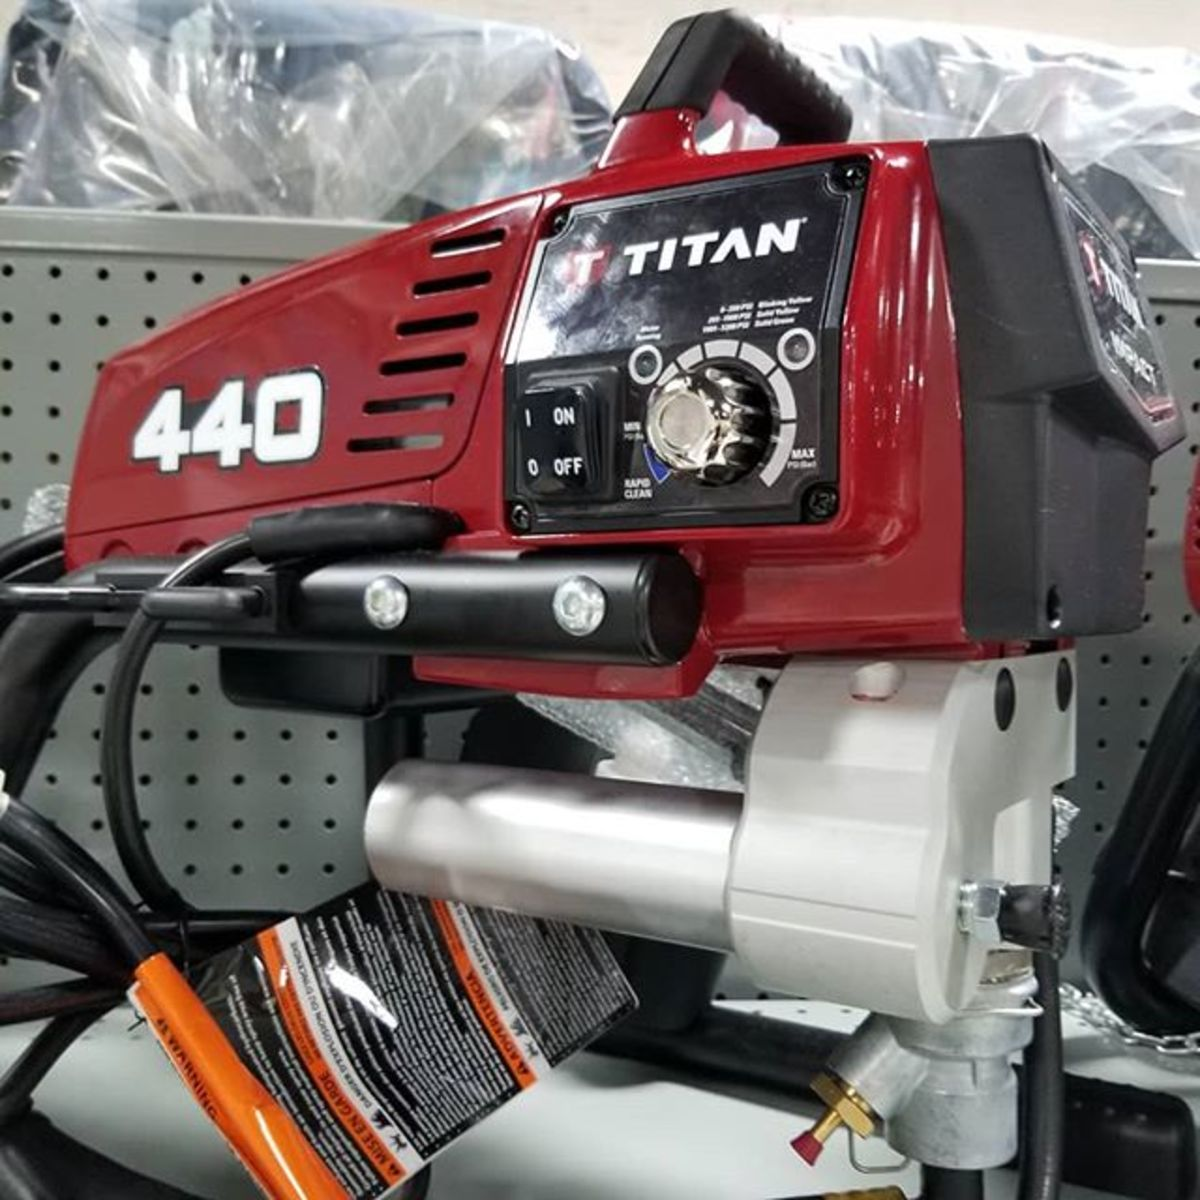 My Review of the Titan 440 Airless Paint Sprayer